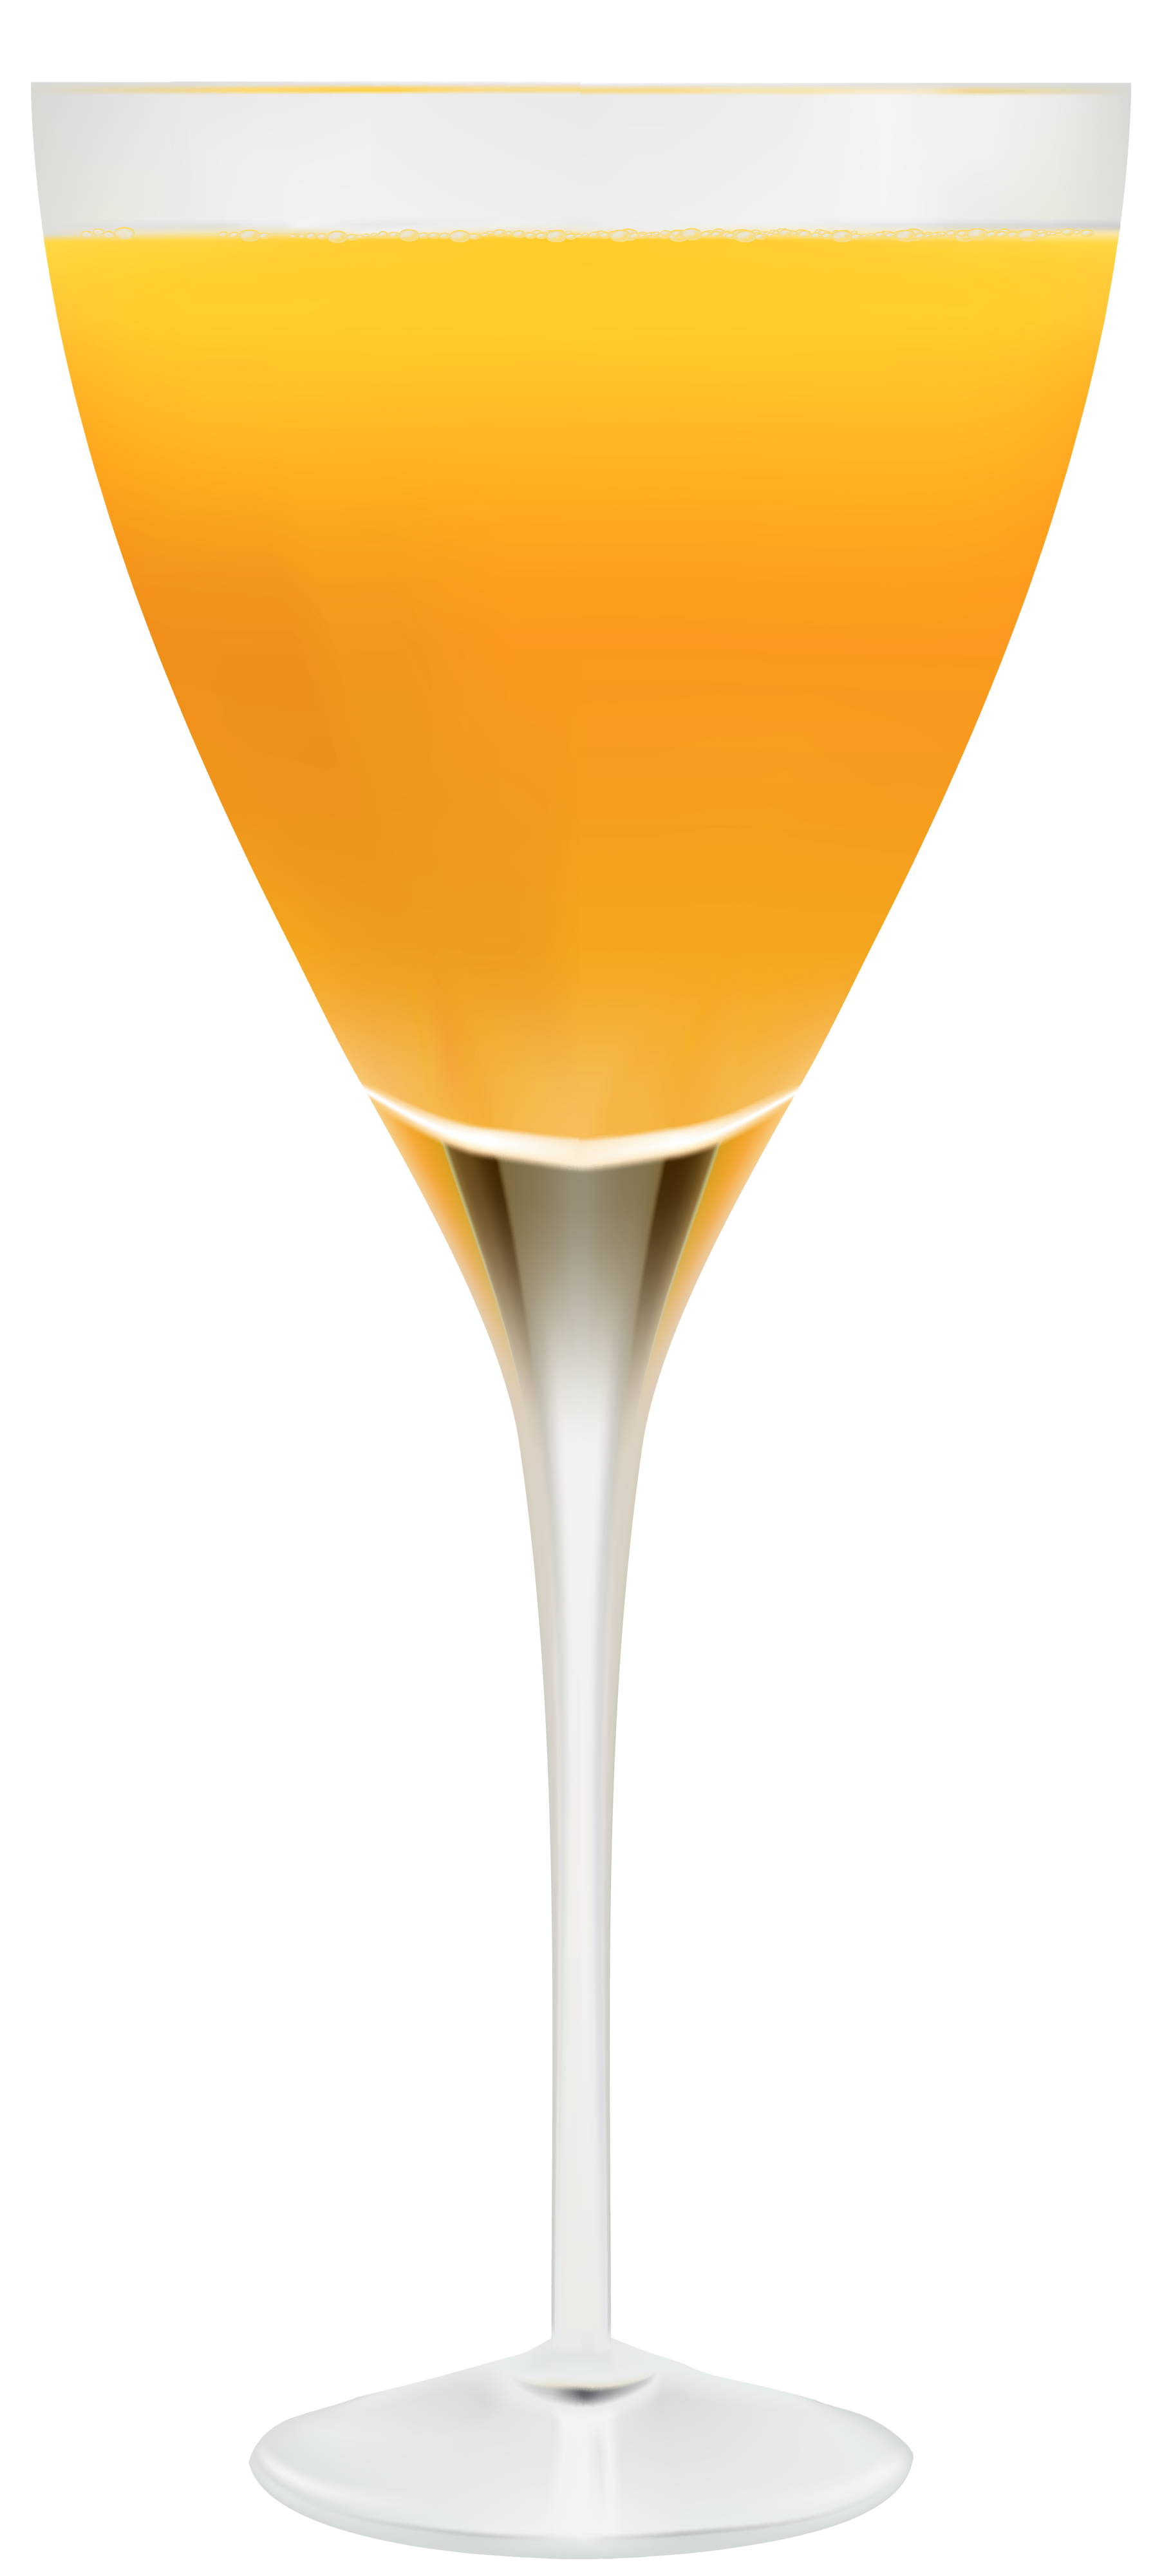 Drinks, Cocktail, Juice Png image #39488